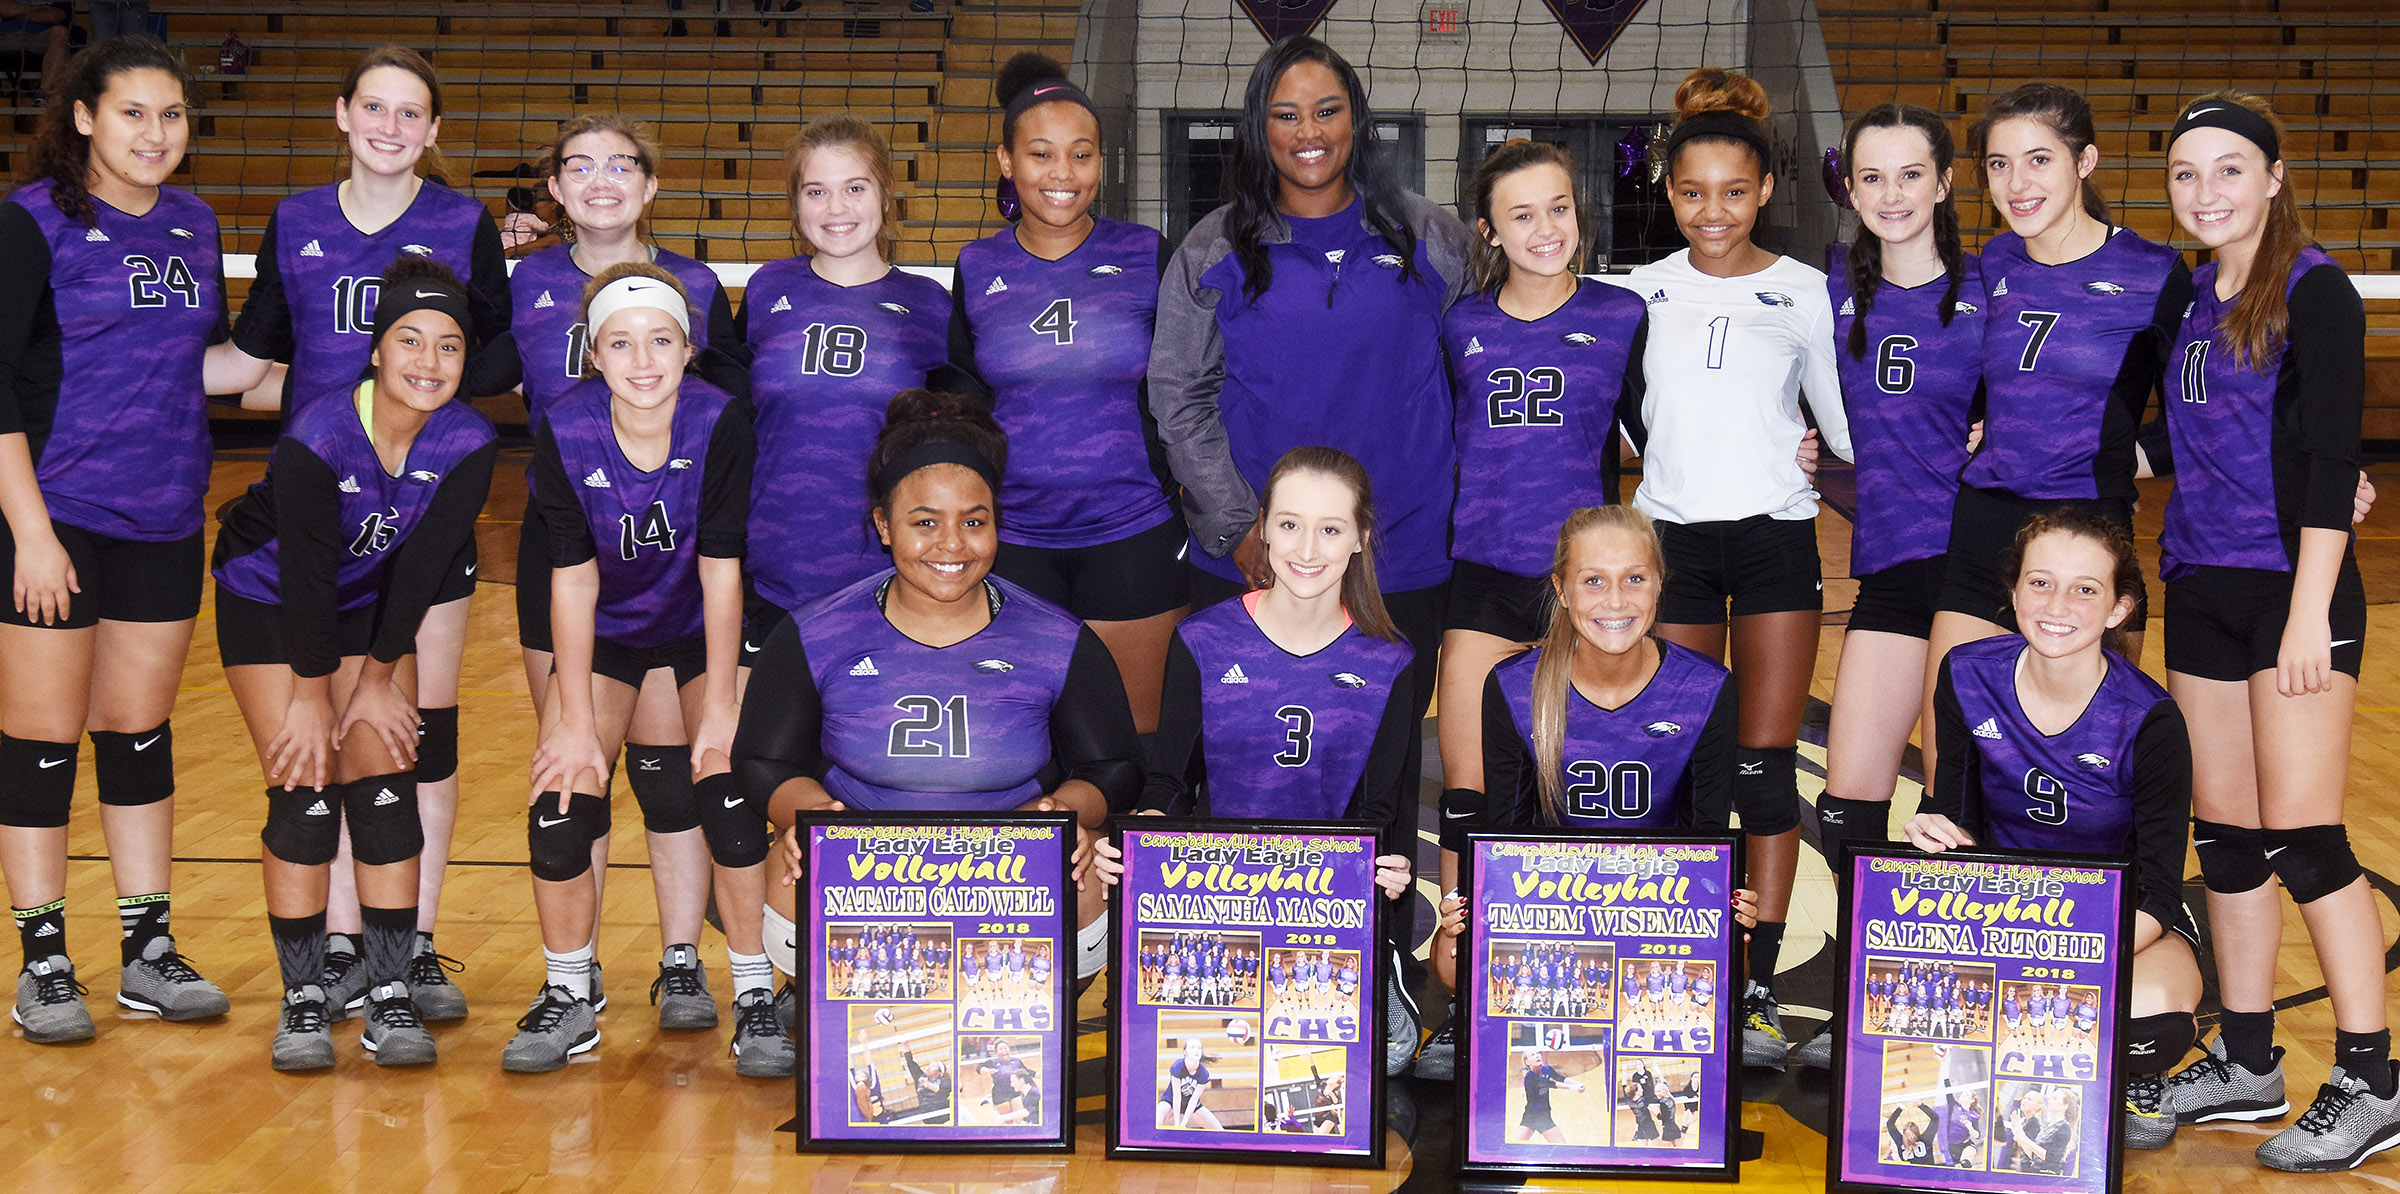 This year's senior volleyball players are pictured with their teammates. From left, front, are seniors Natalie Caldwell, Samantha Mason, Tatem Wiseman and Salena Ritchie. Back, sophomores Anna Clara Moura, Laci Hodgens, in front, Zoie Sidebottom, freshman Rylee Petett, in front, junior Shelby Smith, sophomore Chloe Garrett, junior Ketayah Taylor, coach Shajuana Ditto and freshman Tayler Thompson, Alexis Thomas, Sarah Adkins, Kaylyn Smith and Lainey Watson.